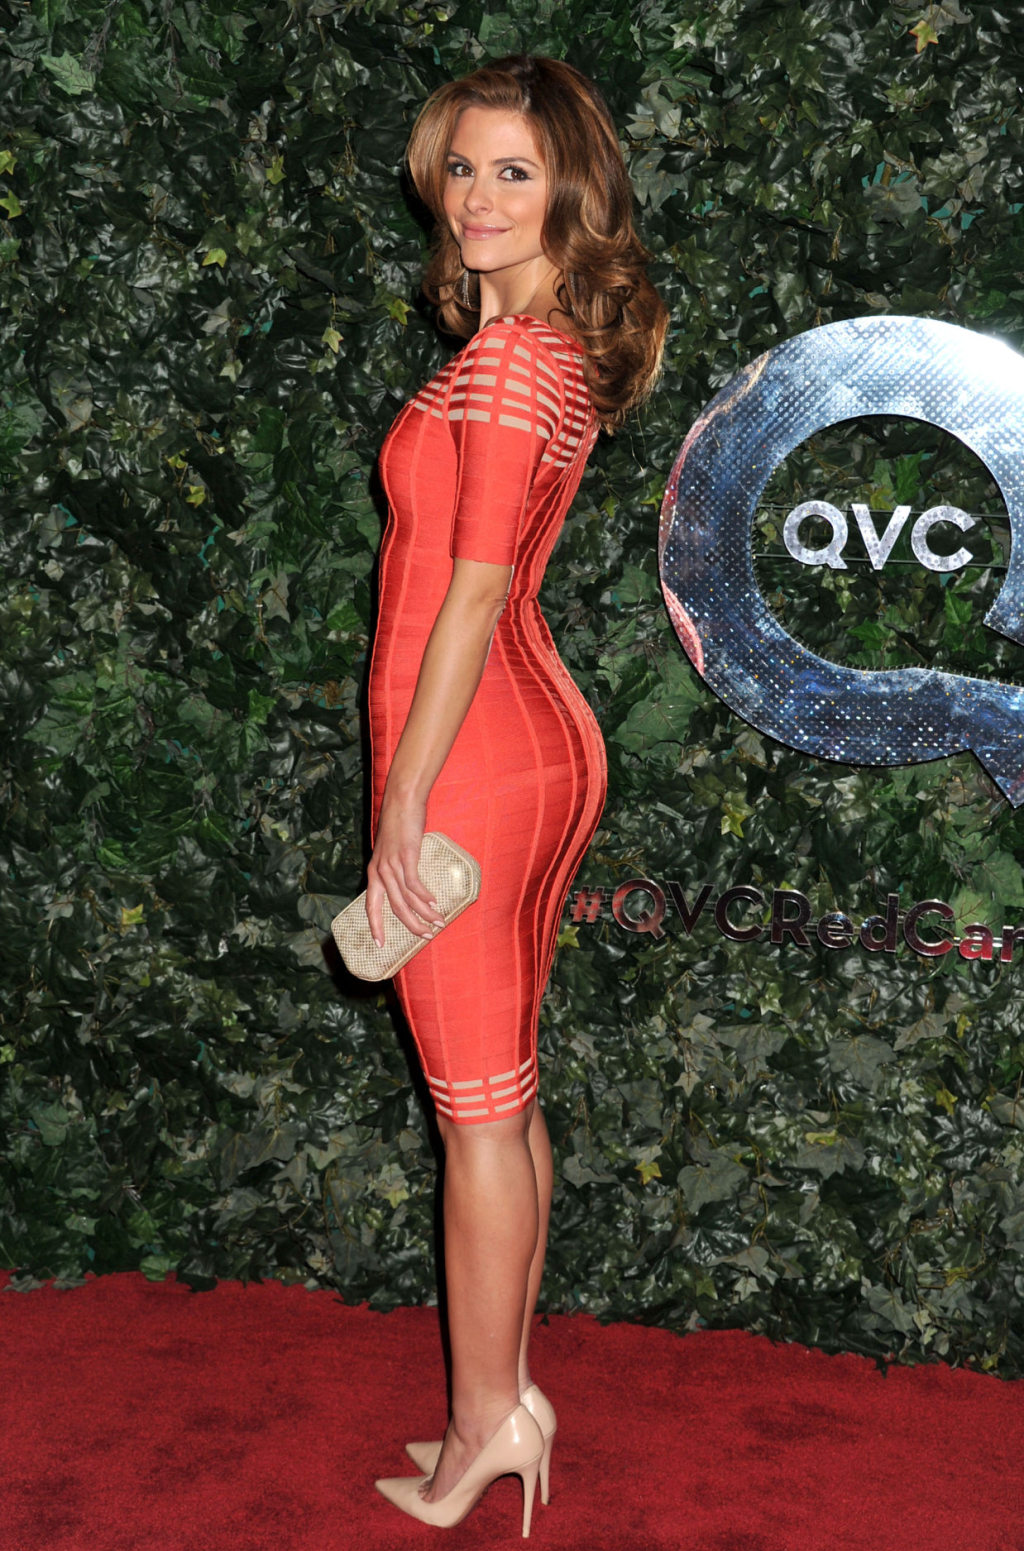 Maria Menounos Red Carpet Curves And Killer Legs In A Red Dress